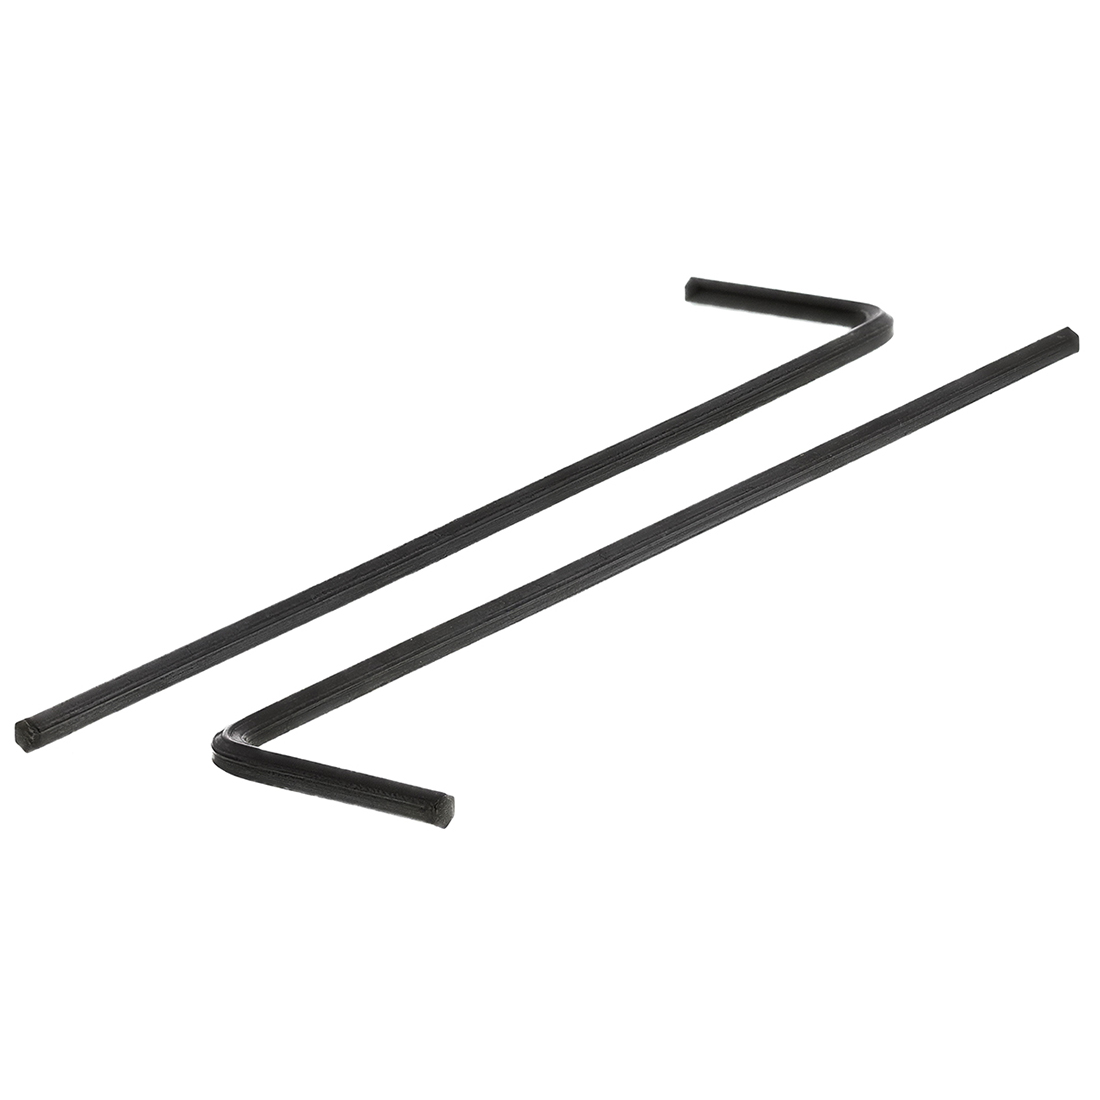 RS PRO Hex Key,  L Shape 3/32in - Pack of 5